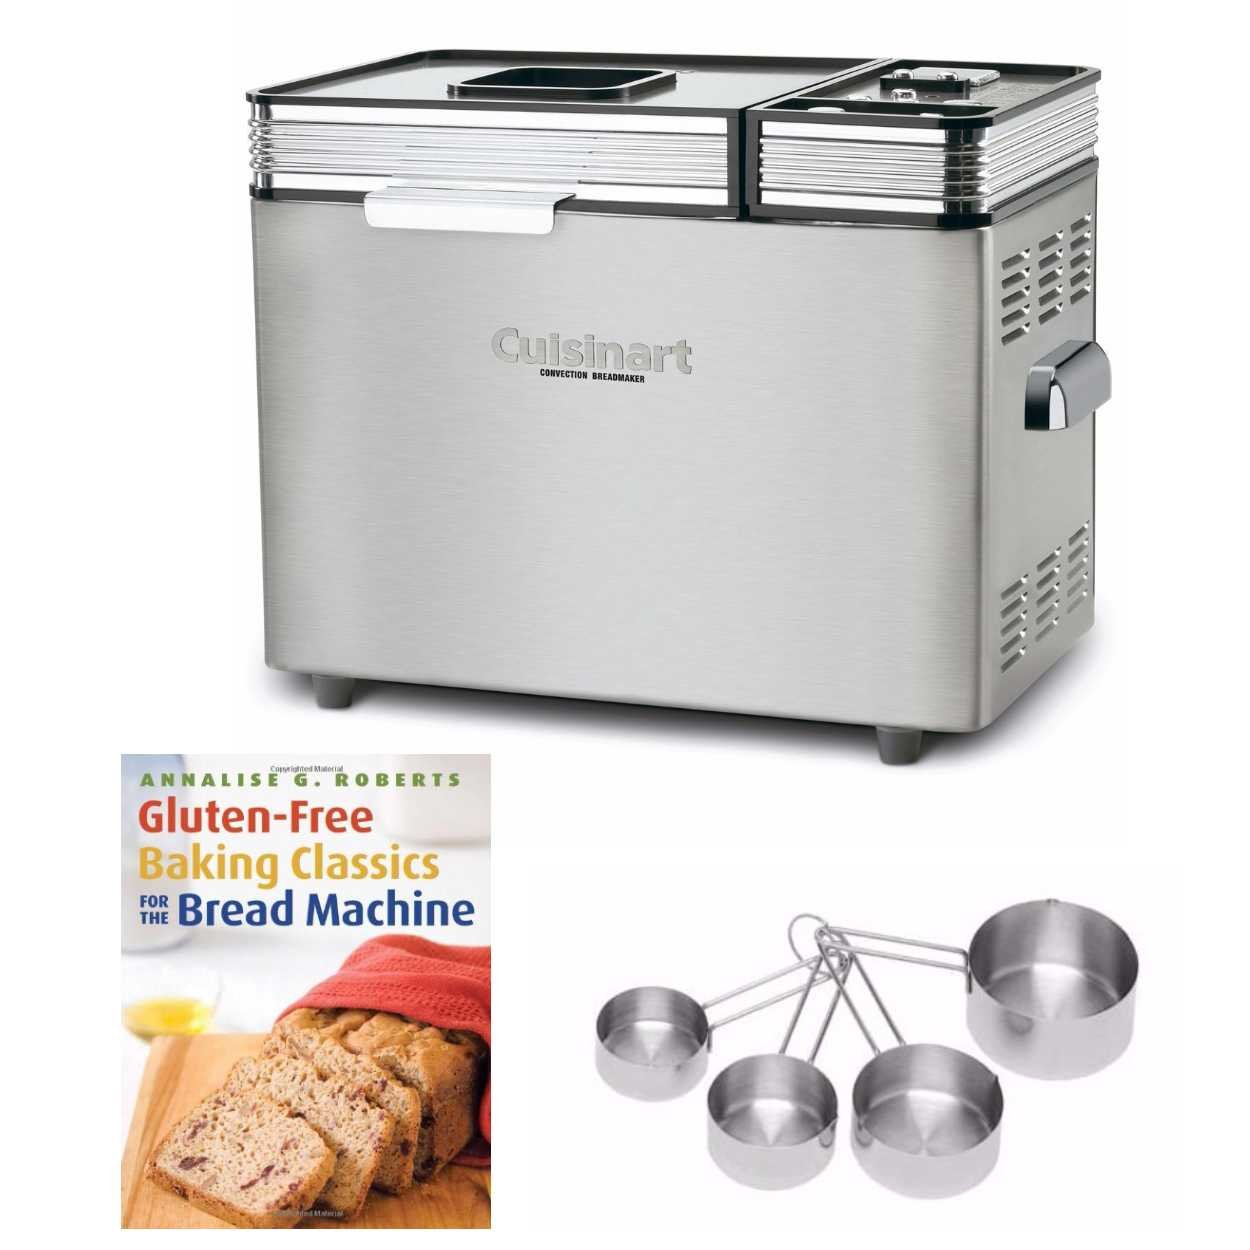 Cuisinart CBK-200 2-Lb Convection Bread Maker Includes Gluten-Free Bread Cookbook and Stainless Measuring Cup Set (Certified Refurbished)